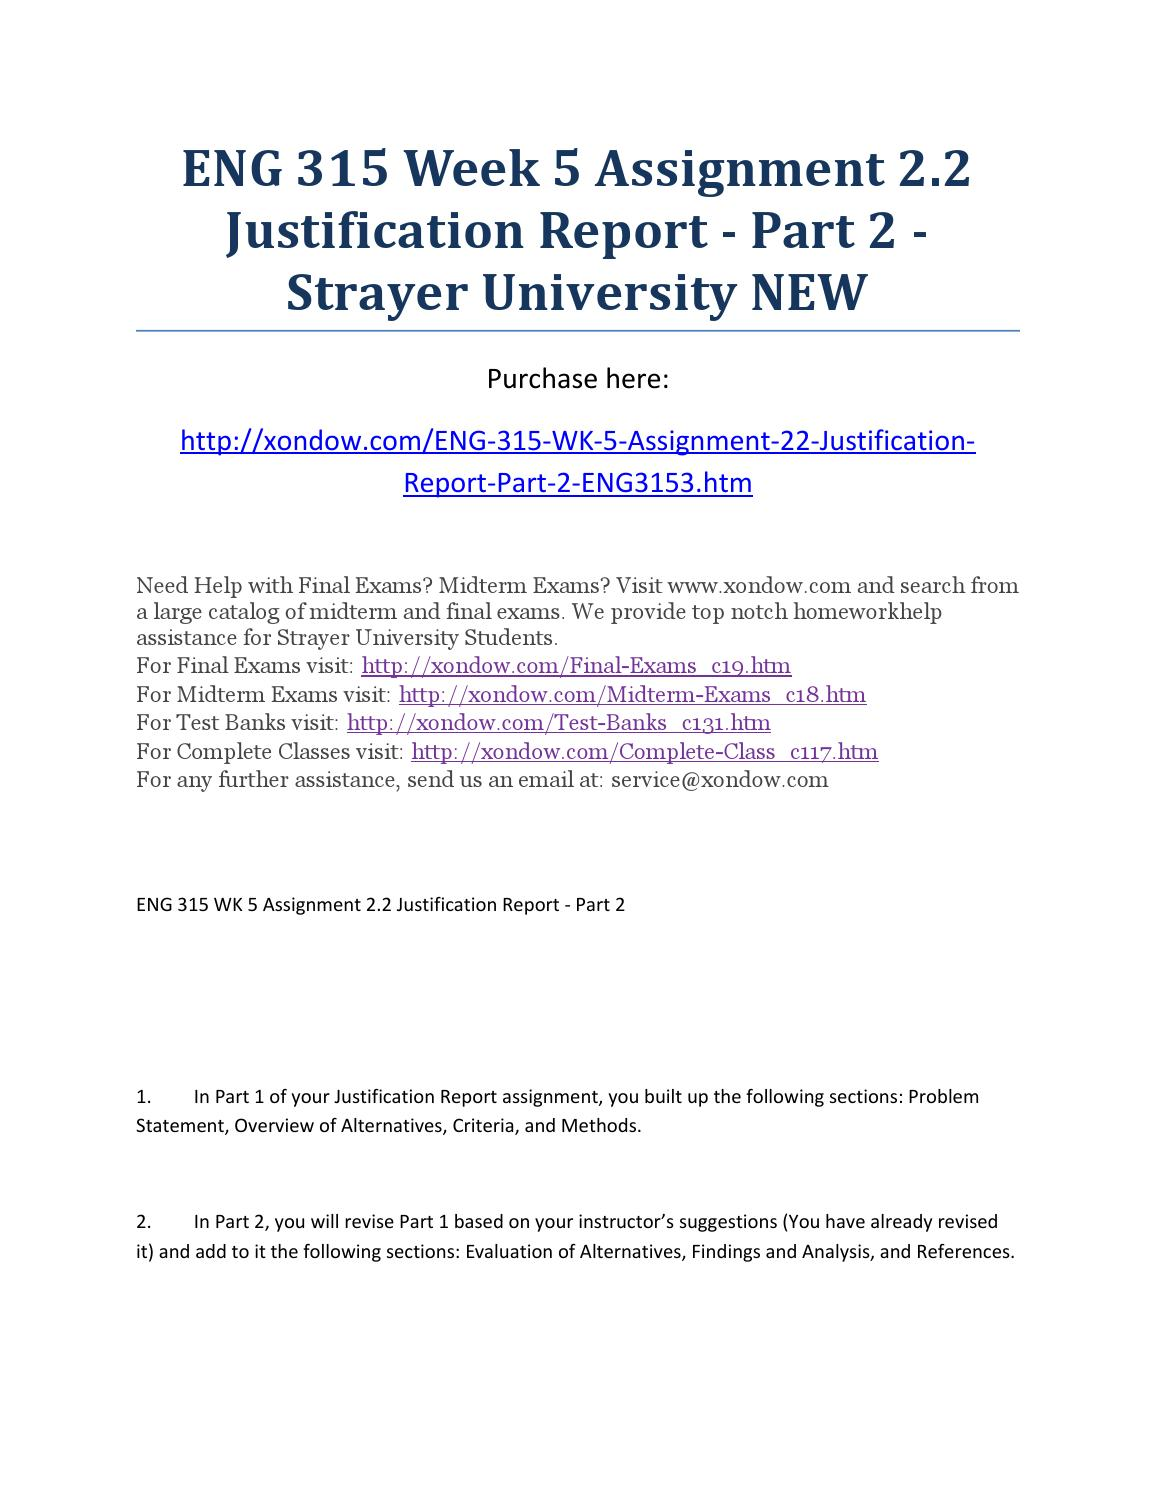 justification report part 1 View essay - assignment 21 justification report - part 1 from eng 315 at strayer running head: assignment 21: justification report part 1 assignment 21.